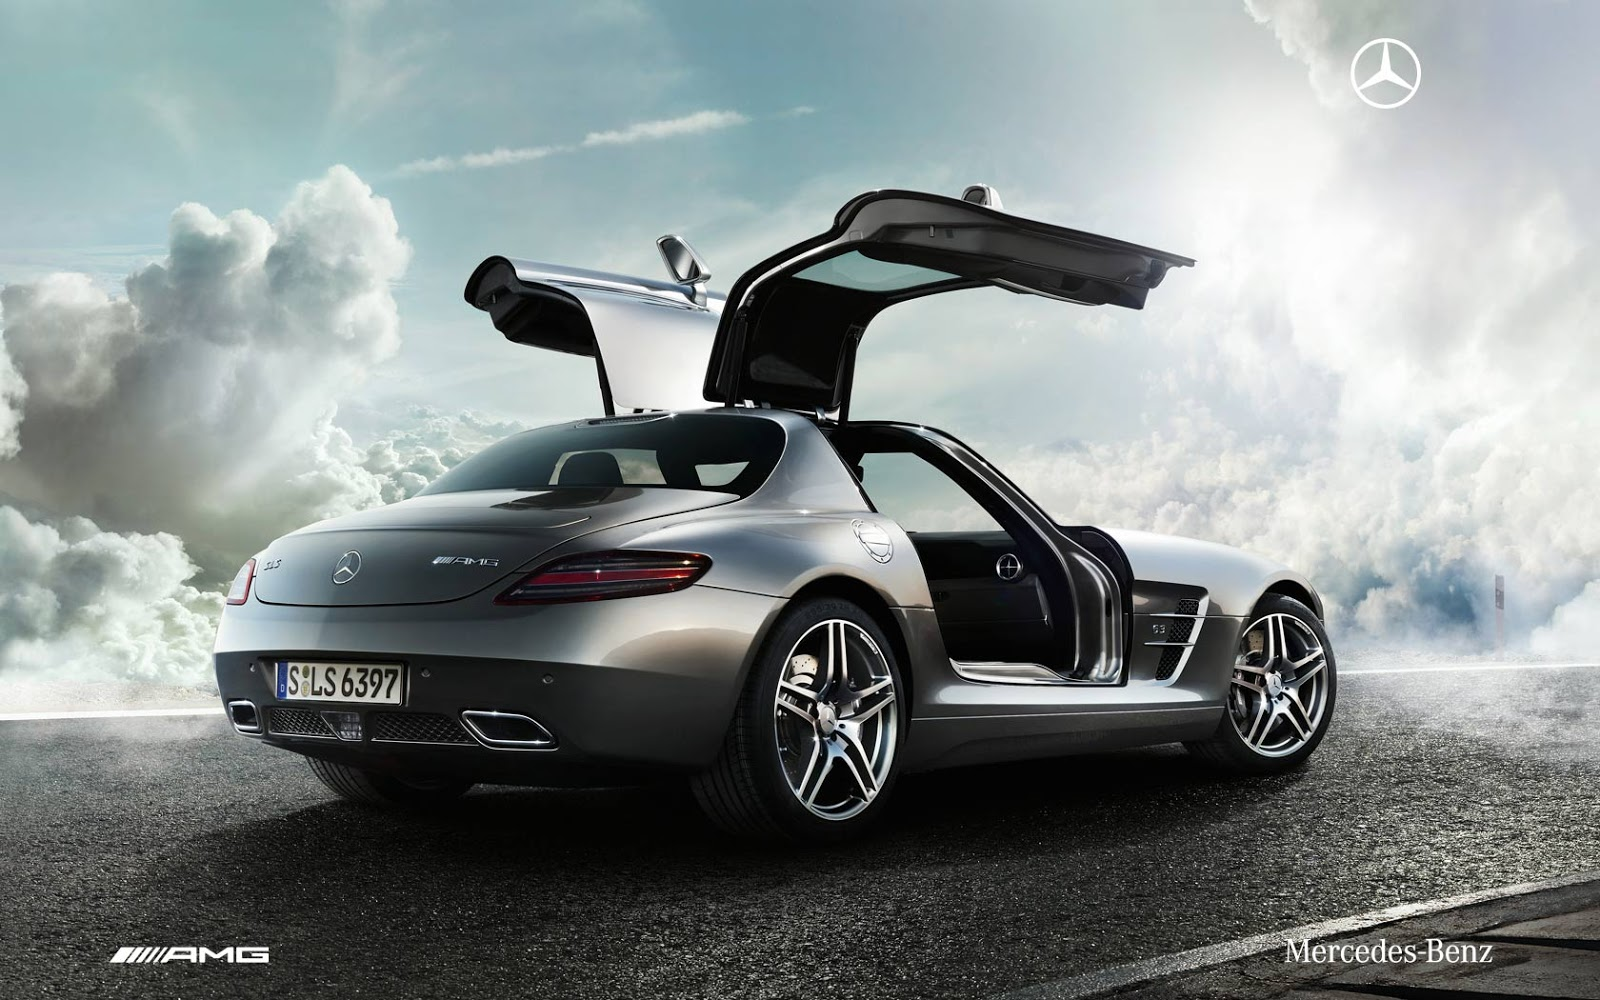 mercedes-benz sls amg related images,start 200 - WeiLi